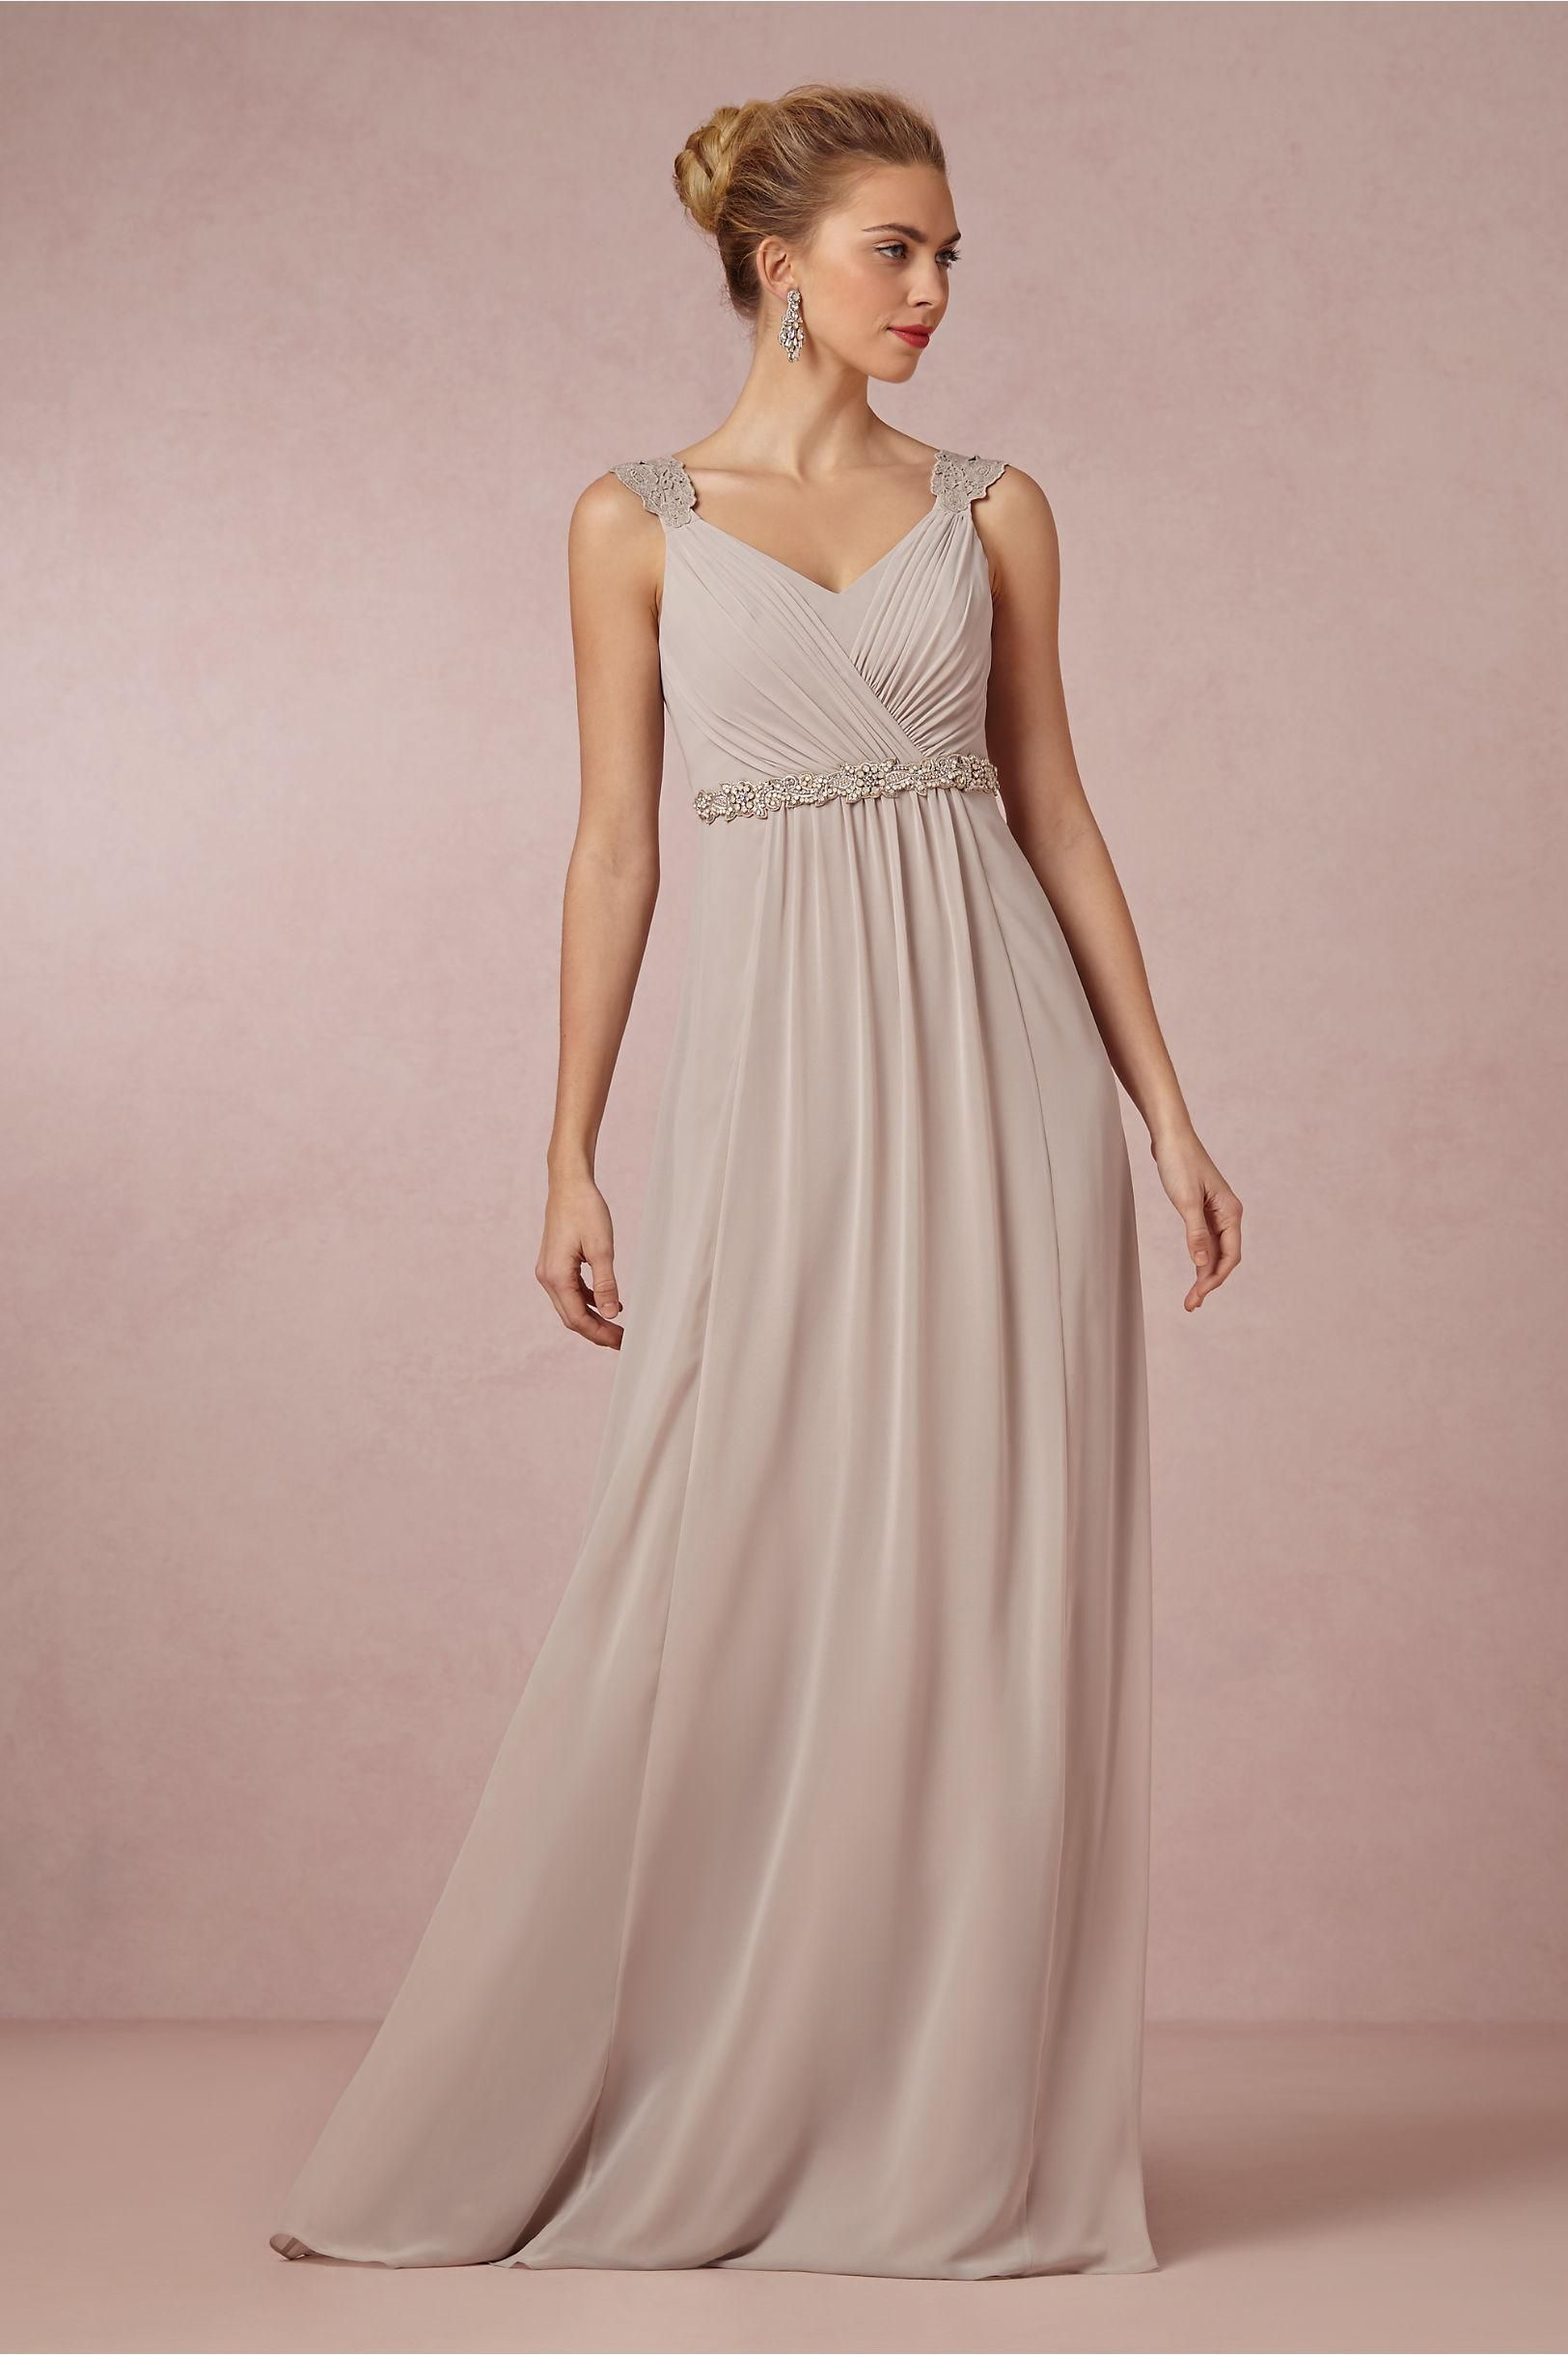 Product freya maxi dress in dove grey from bhldn bridesmaids product freya maxi dress in dove grey from bhldn bridesmaids ombrellifo Choice Image